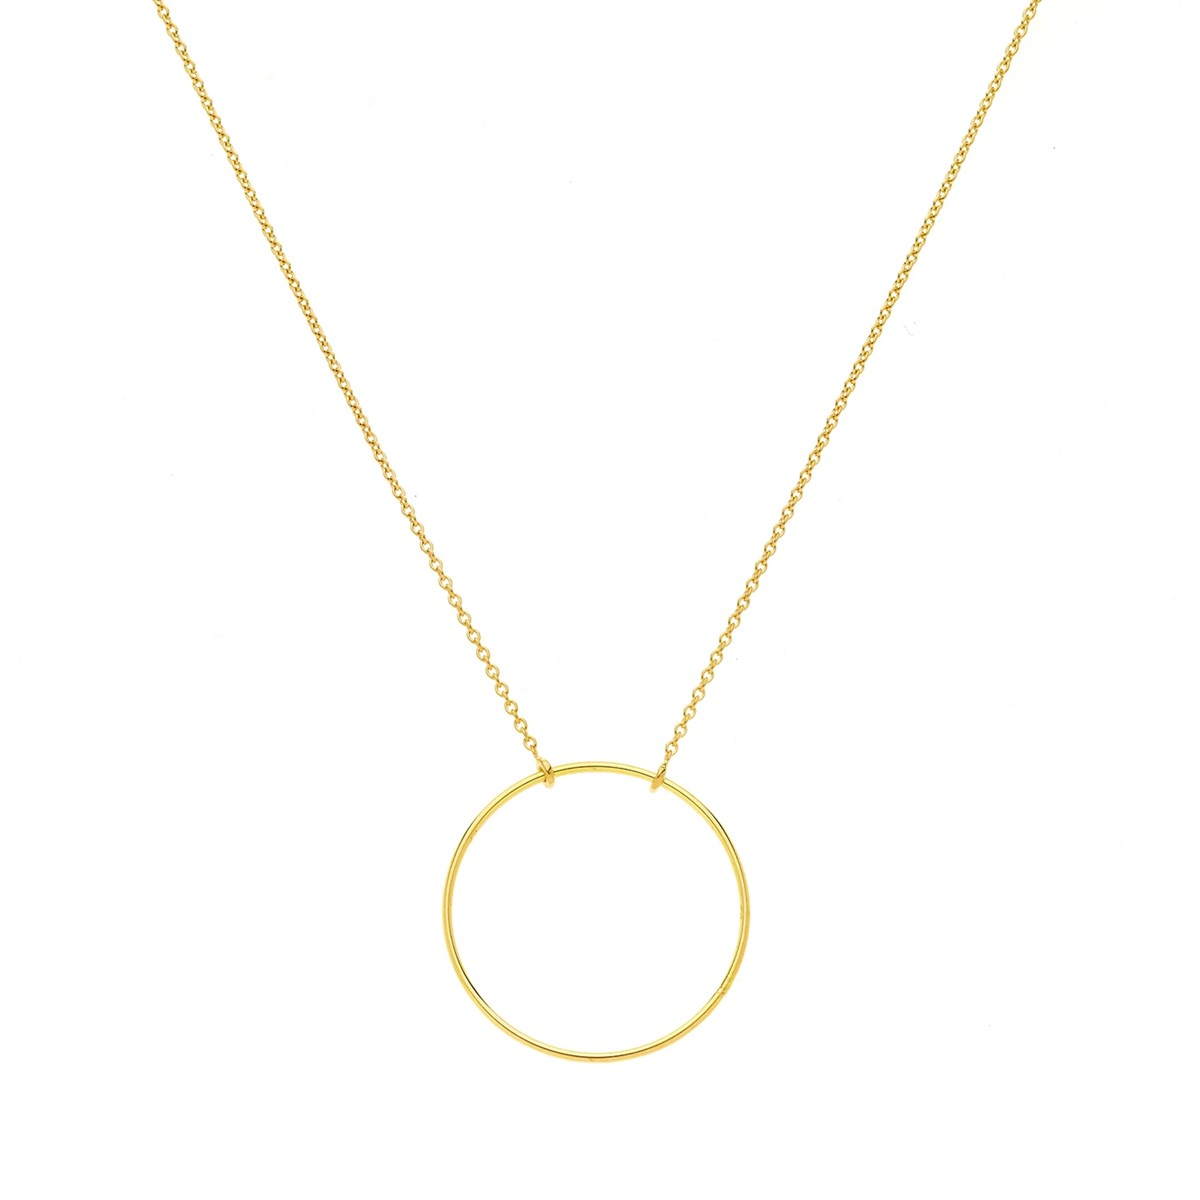 Collier cercle or jaune 18 carats 20 mm